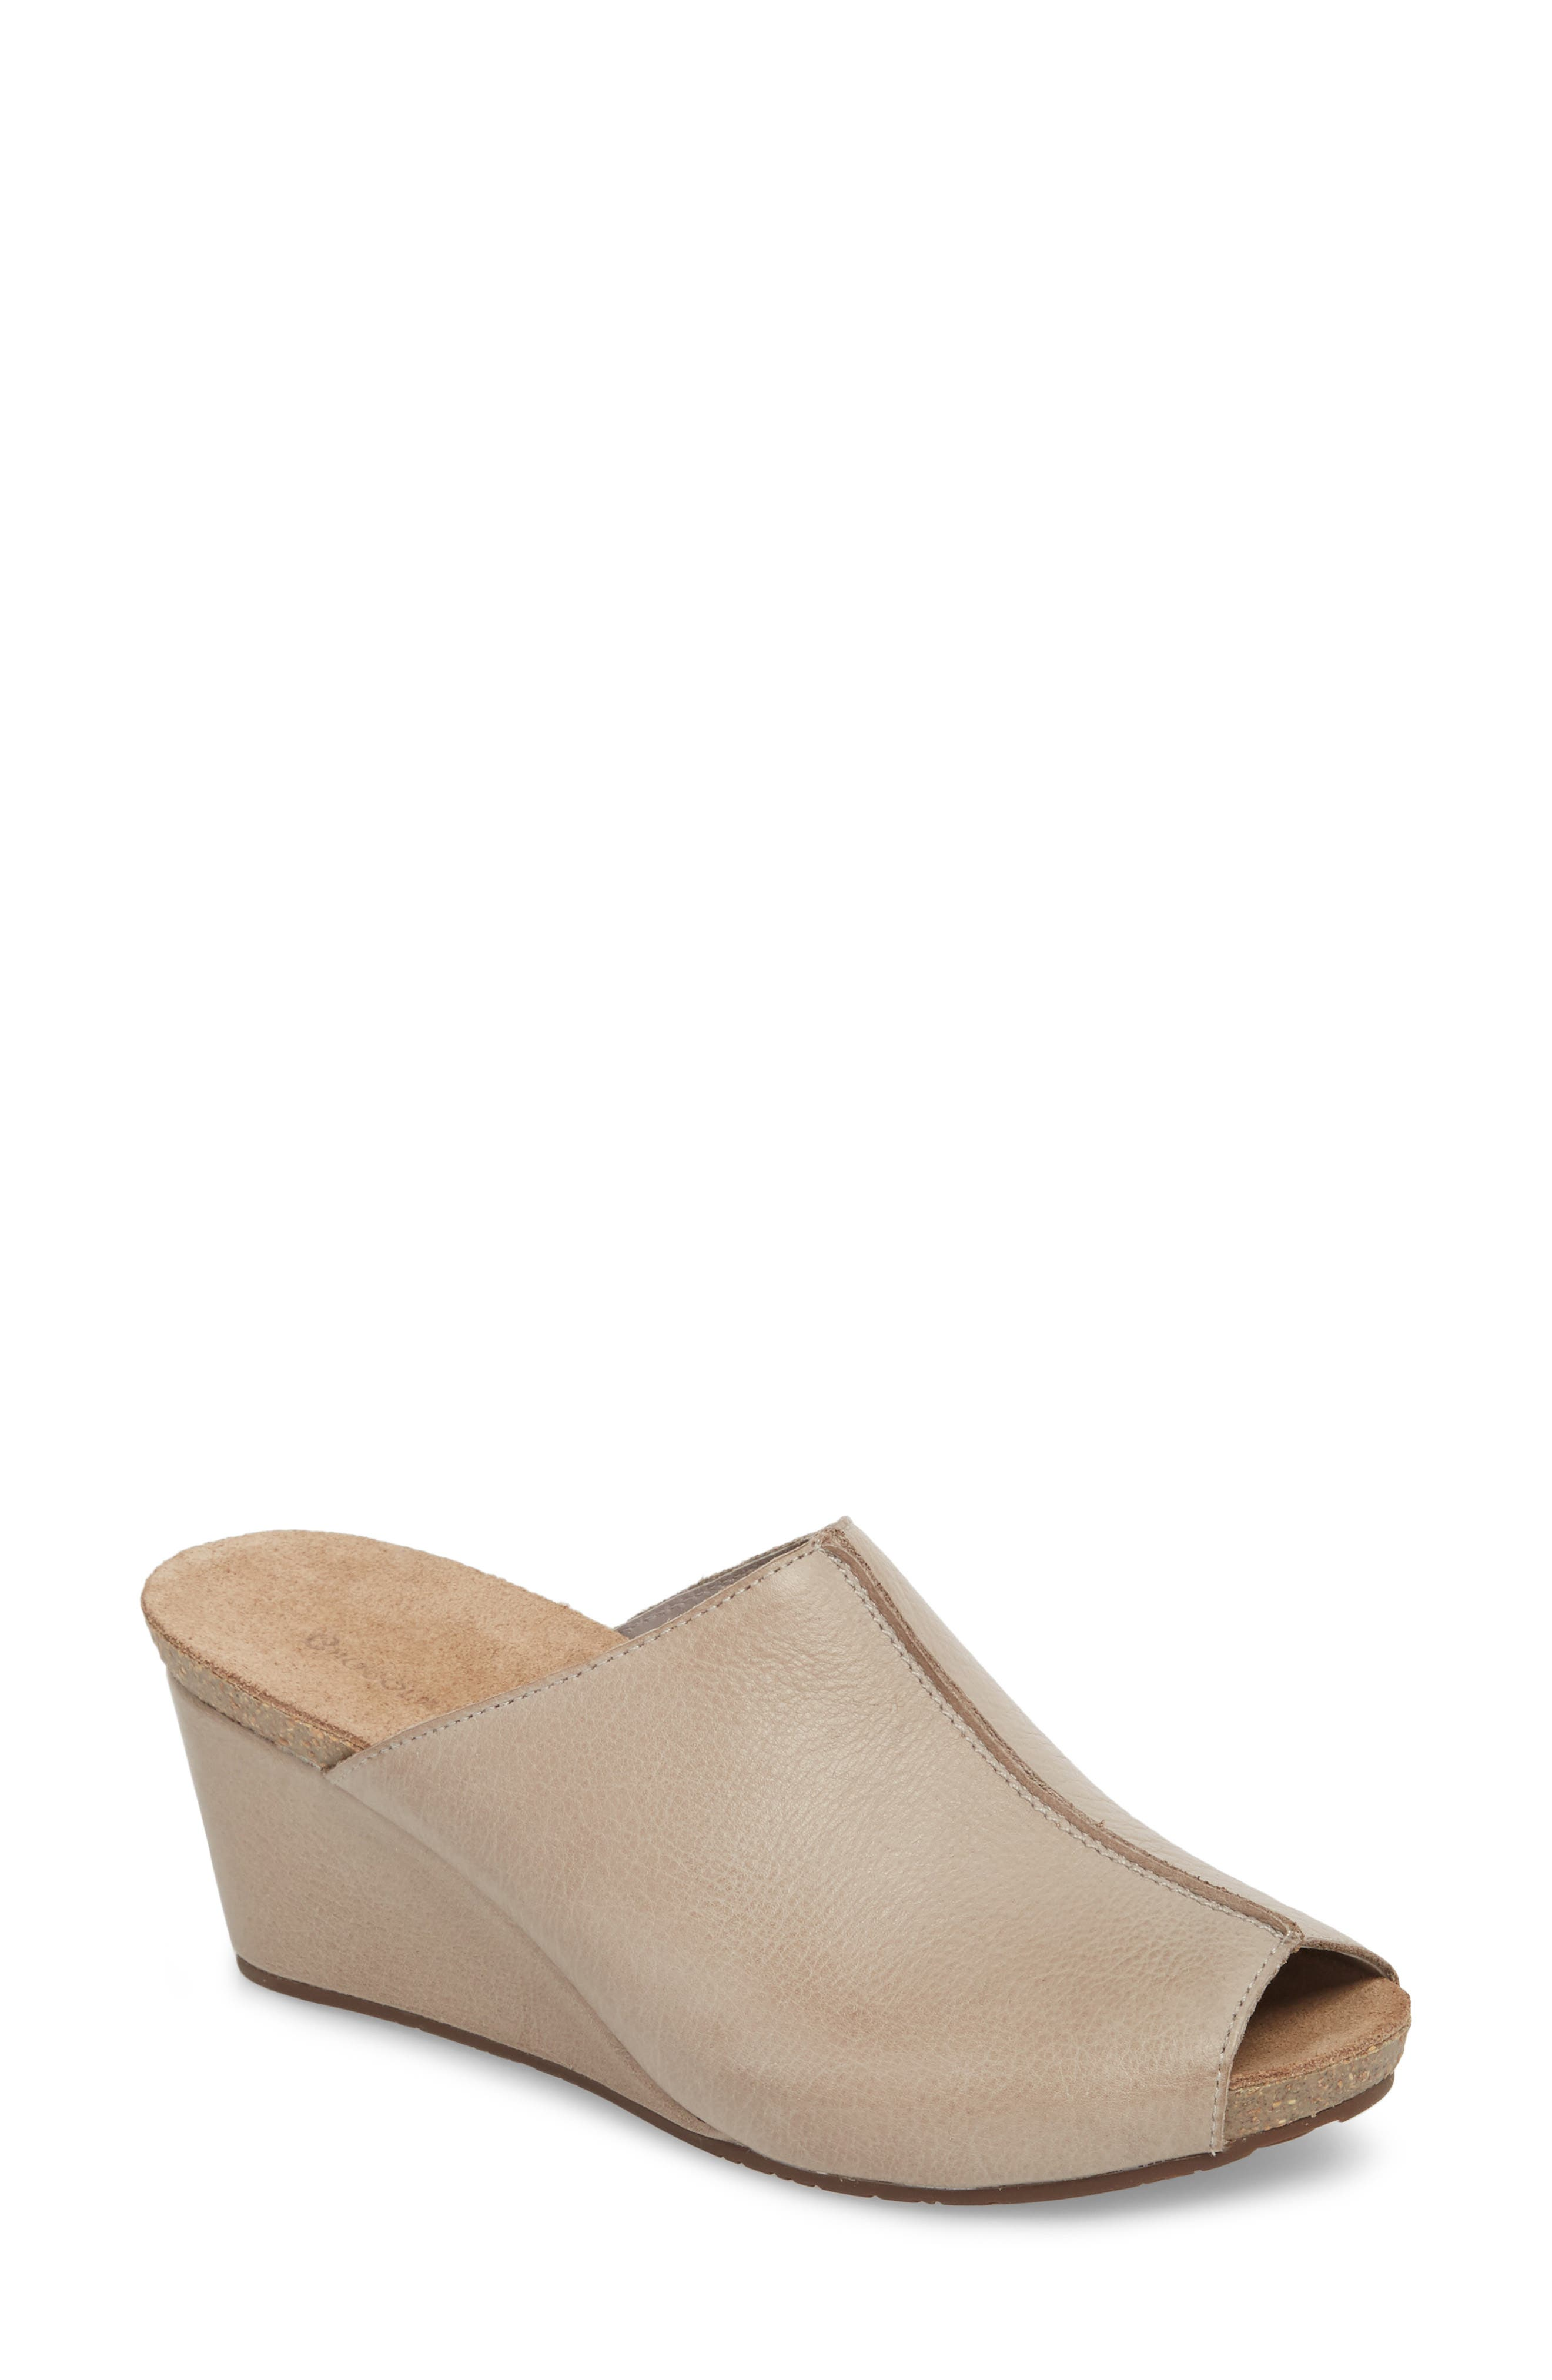 Elden Wedge Mule,                             Main thumbnail 1, color,                             Grey Leather